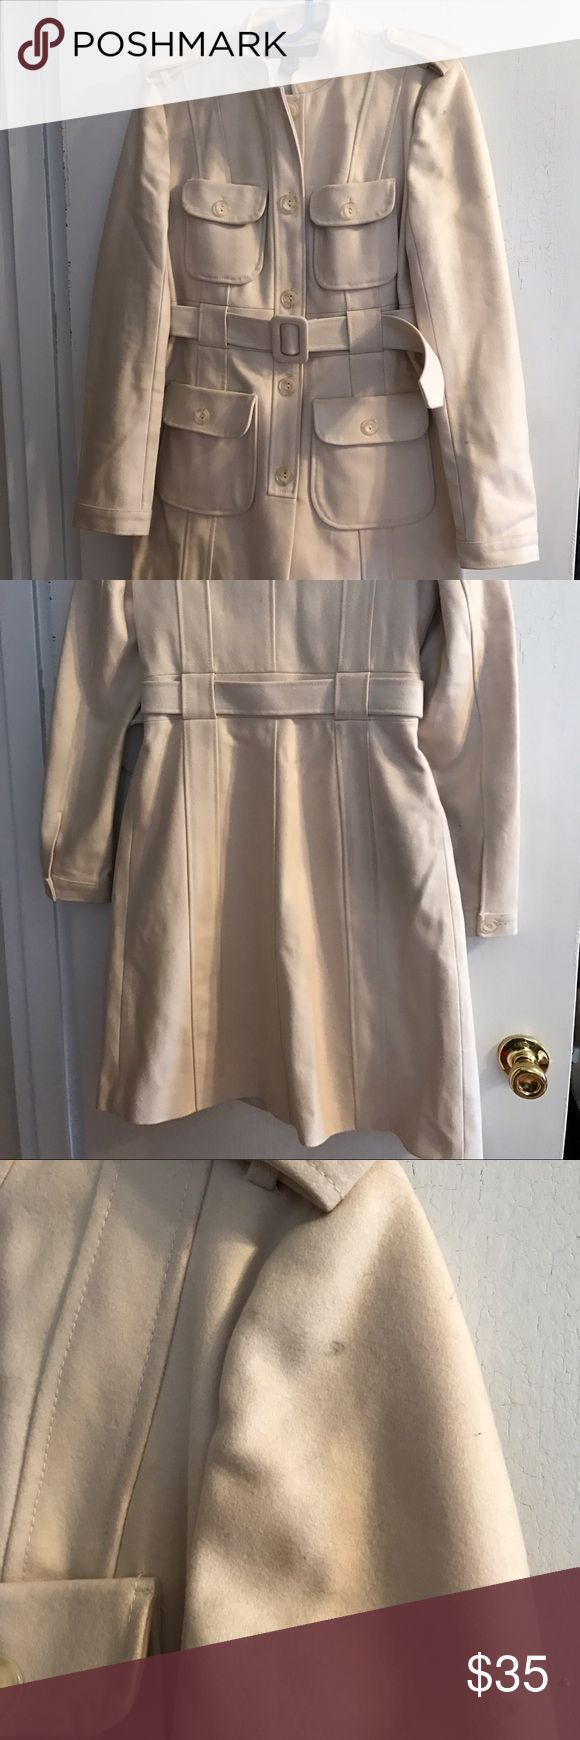 White cream  French Connection coat 6 Size 6. Some small stains, coat would use cleaning. Flaws pictured, some dents in the fabrics. Priced low due to the coat being in fair condition. French Connection Jackets & Coats Trench Coats